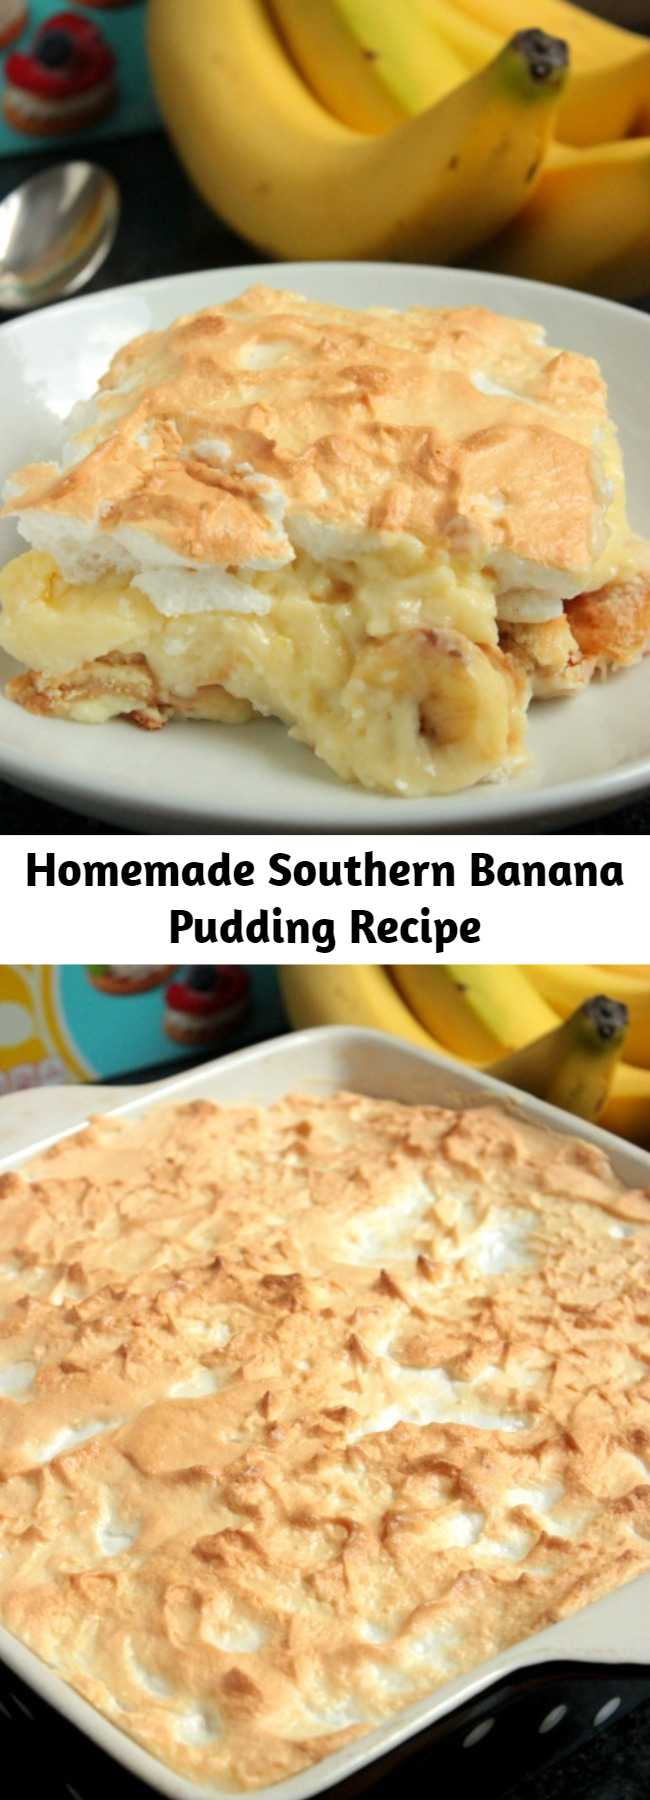 Homemade Southern Banana Pudding Recipe - Serve is hot or cold, this Homemade Southern Banana Pudding is going to be loved by all! Roasting the banana gives it a richer banana flavor too!